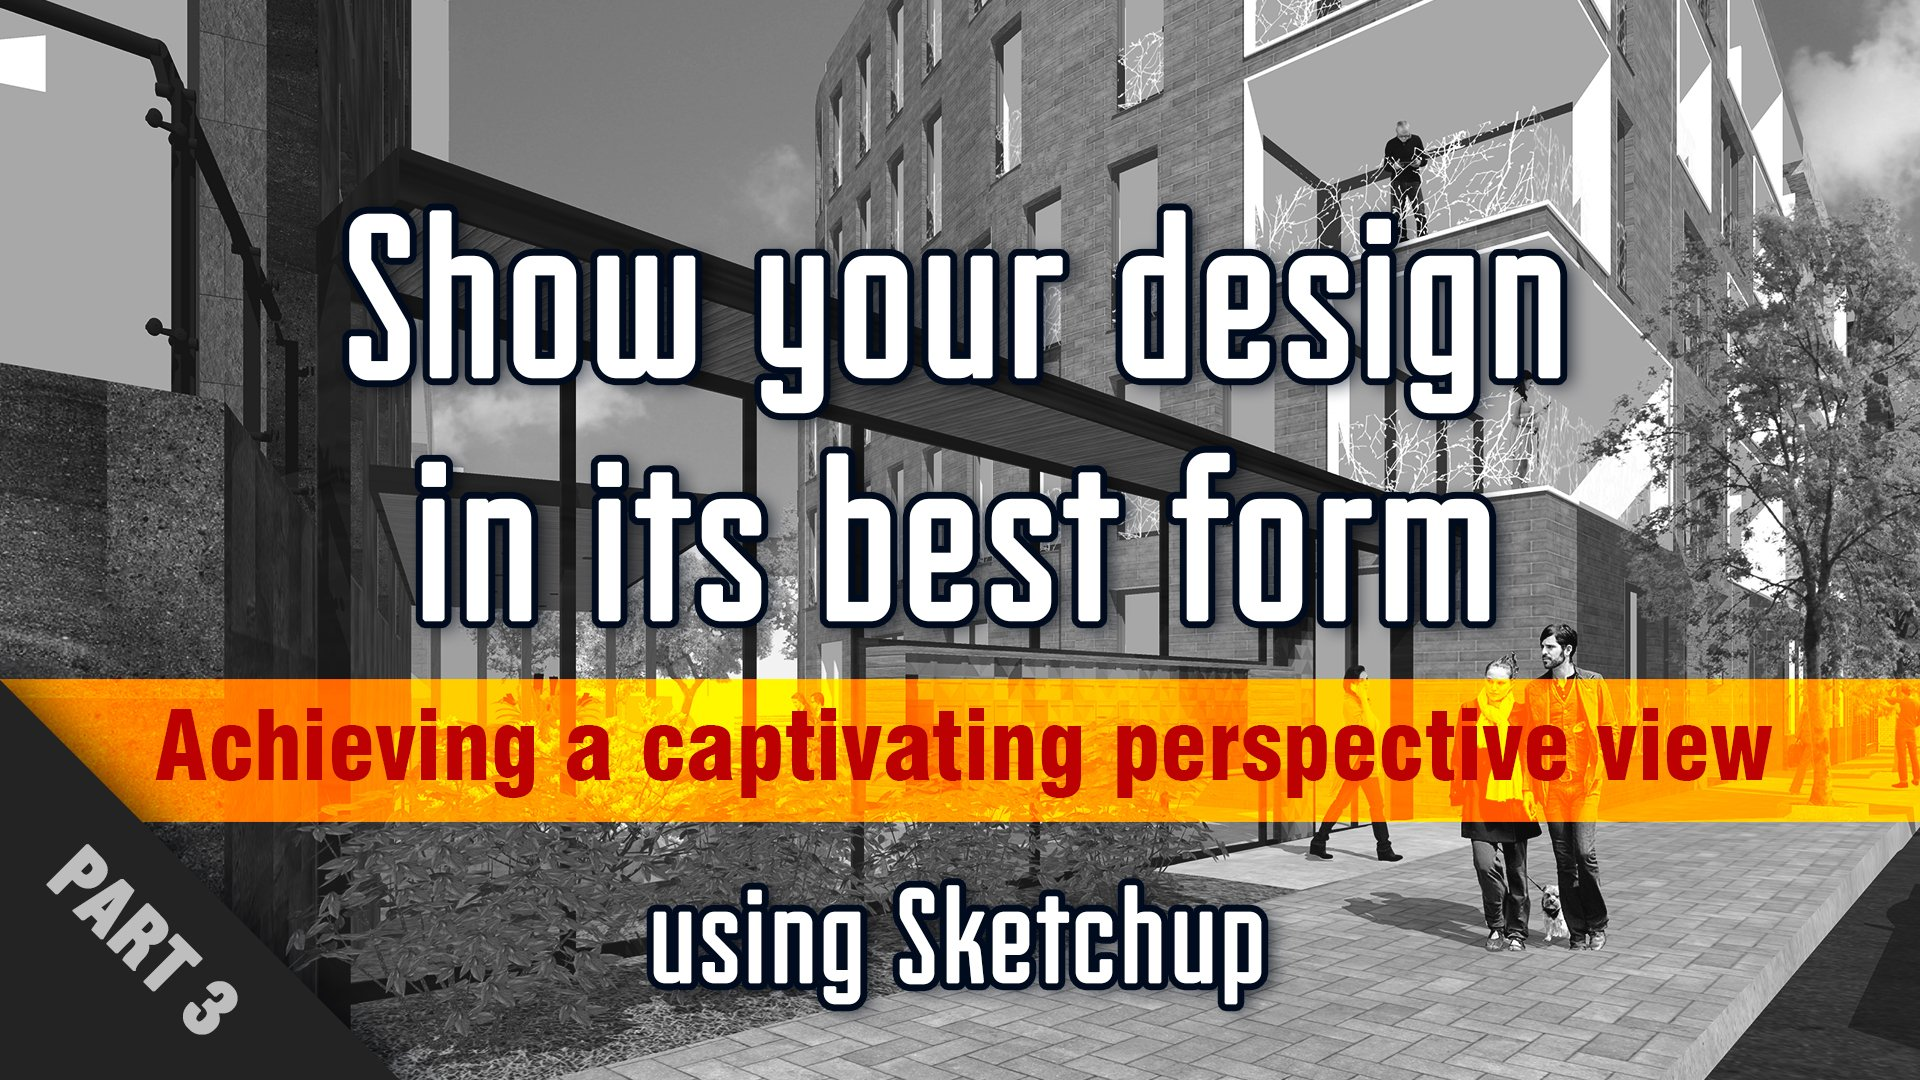 Show your design in its best form using Sketchup - Part 3